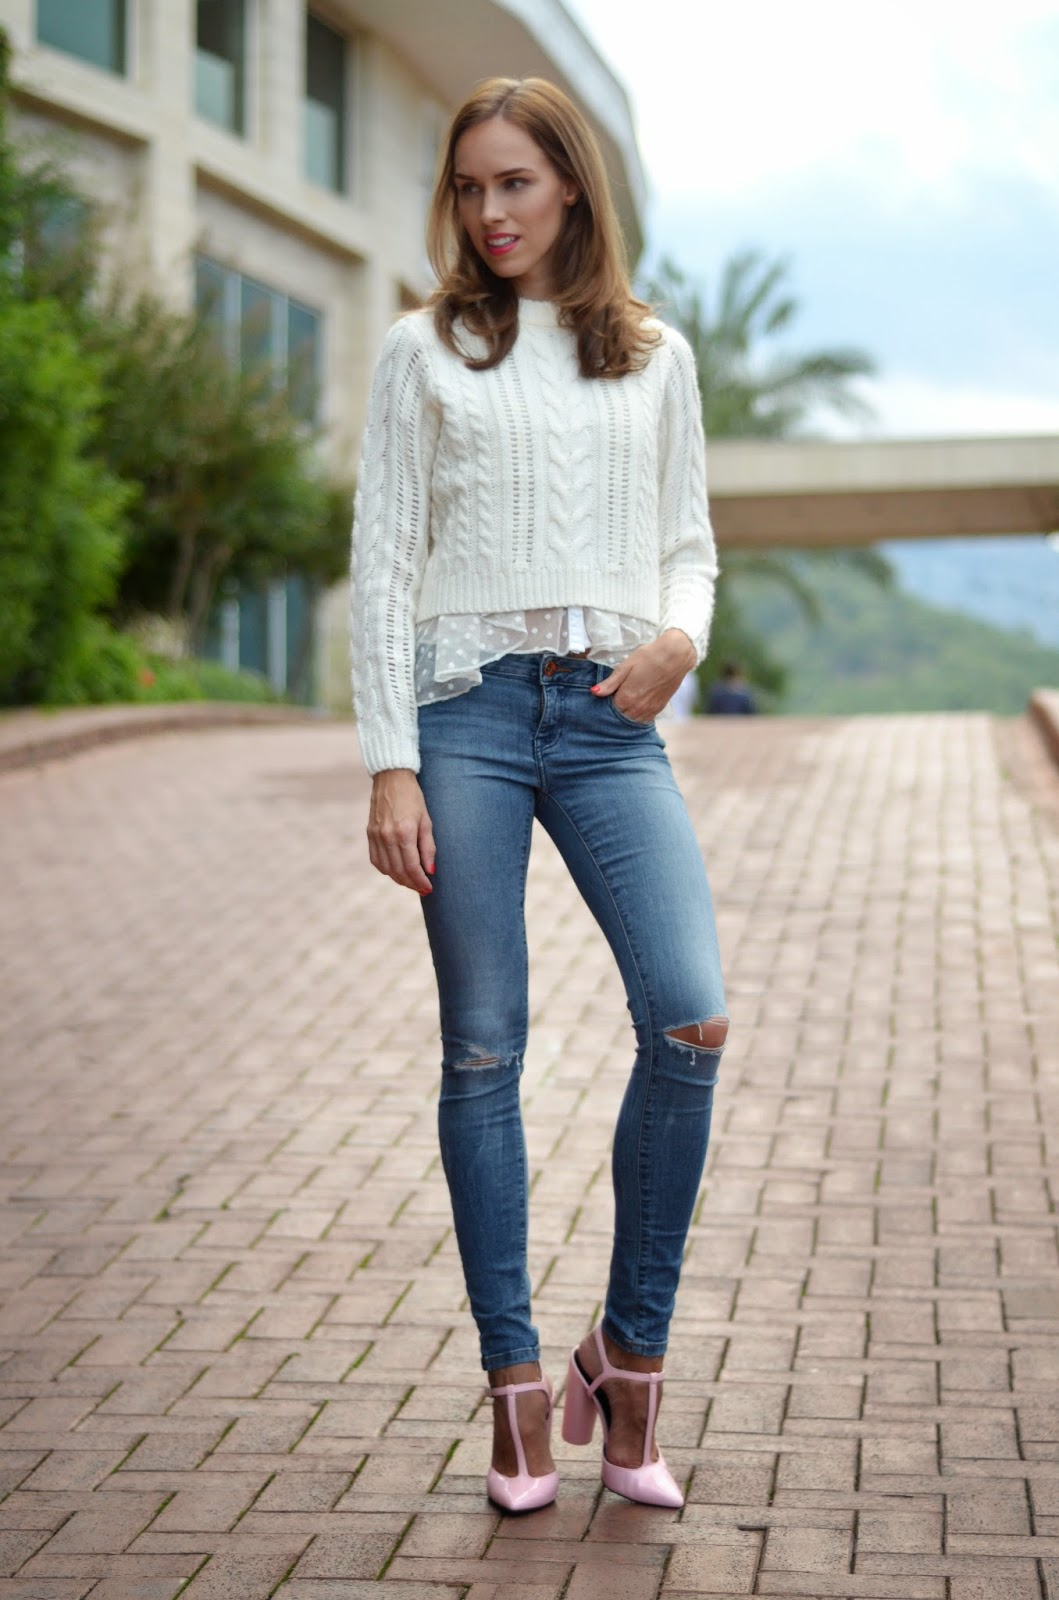 blue-jeans-white-shirt-outfit-fashion kristjaana mere